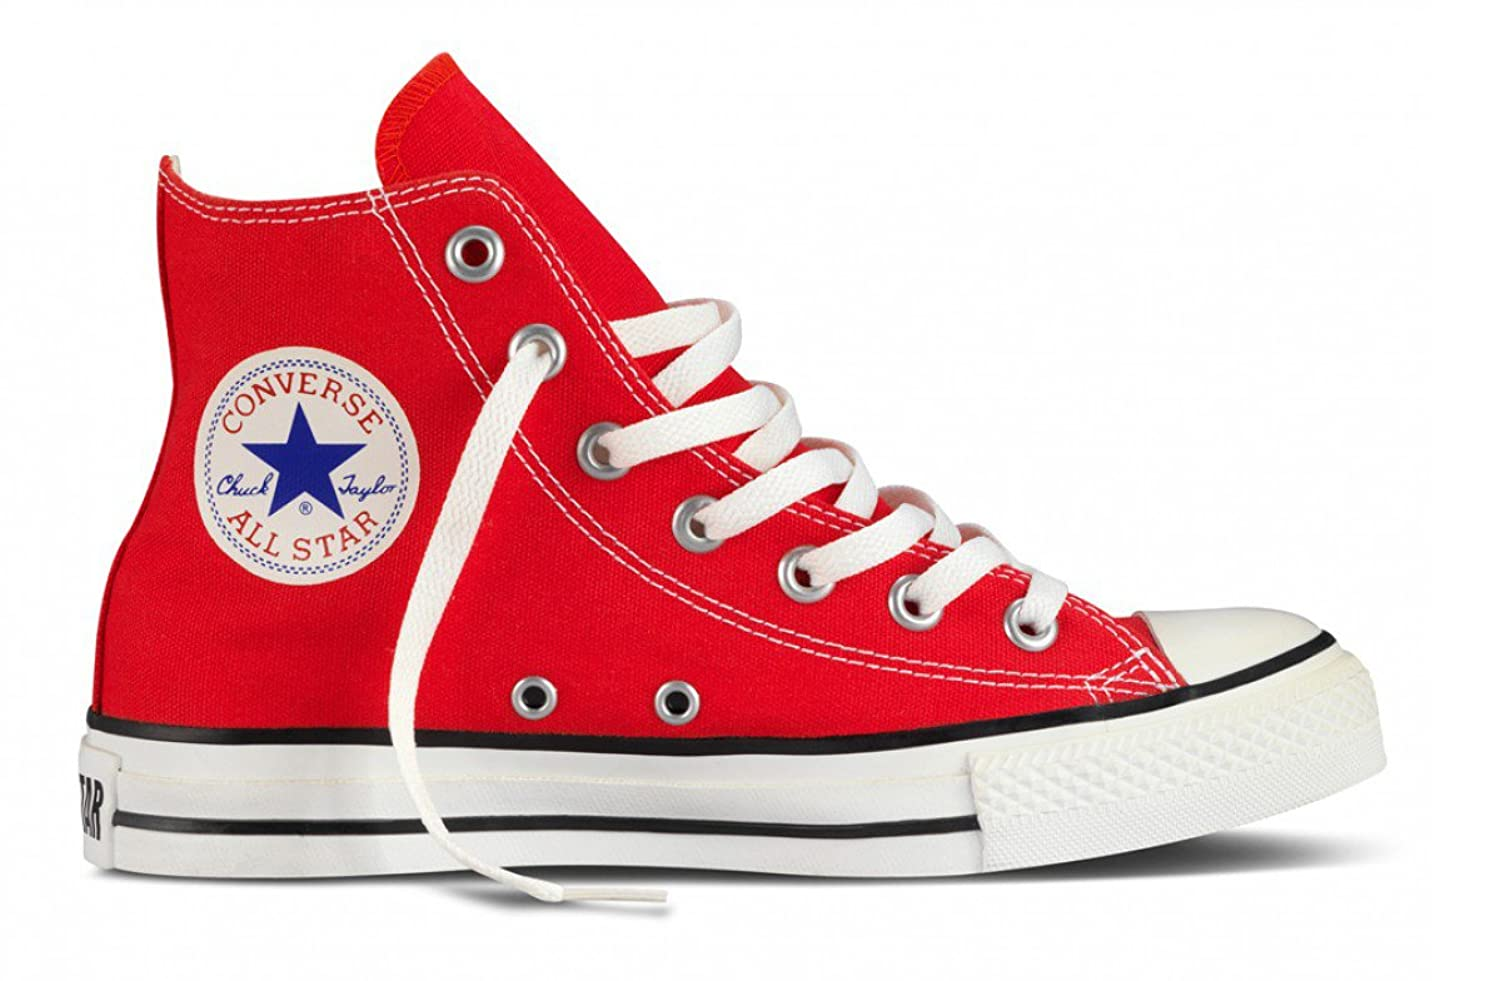 b05c63b24b7d Converse Unisex Chuck Taylor All Star High Top 60%OFF - holmedalblikk.no